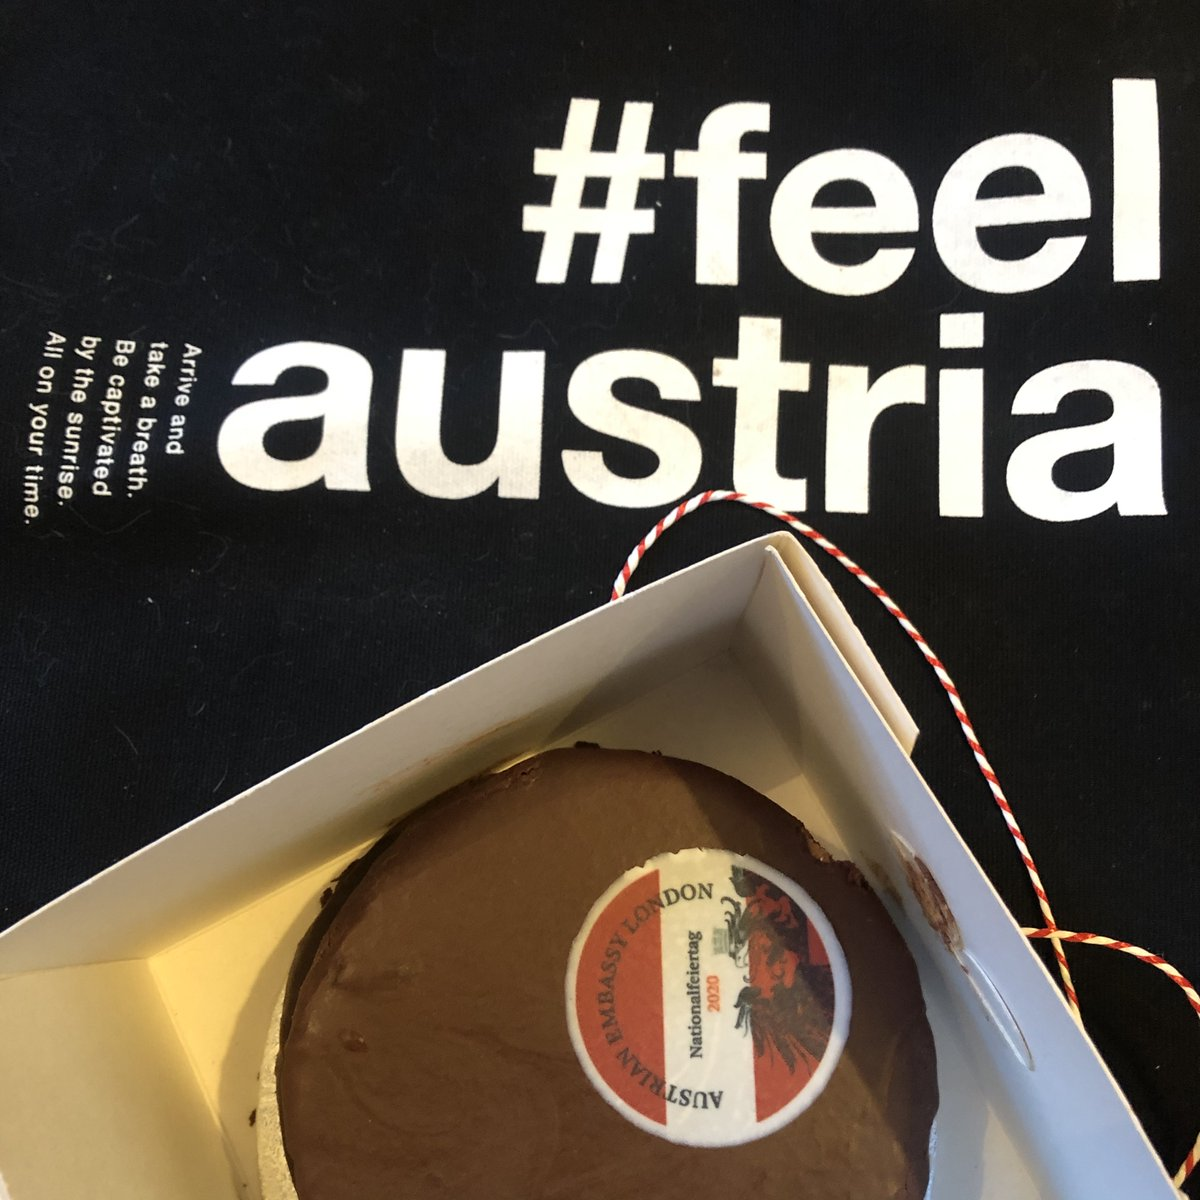 test Twitter Media - Toasting milestones with #Austria today: 65 yrs since it regained sovereignty after WWII & joined the UN & 25yrs of EU membership. We celebrate with HE @MZimmermannAT @austriainuk & all Austrian friends with a slice of Austria baked by Embassy Chef Franz Schinagl. Vielen Dank! https://t.co/9sMUtLyY0C